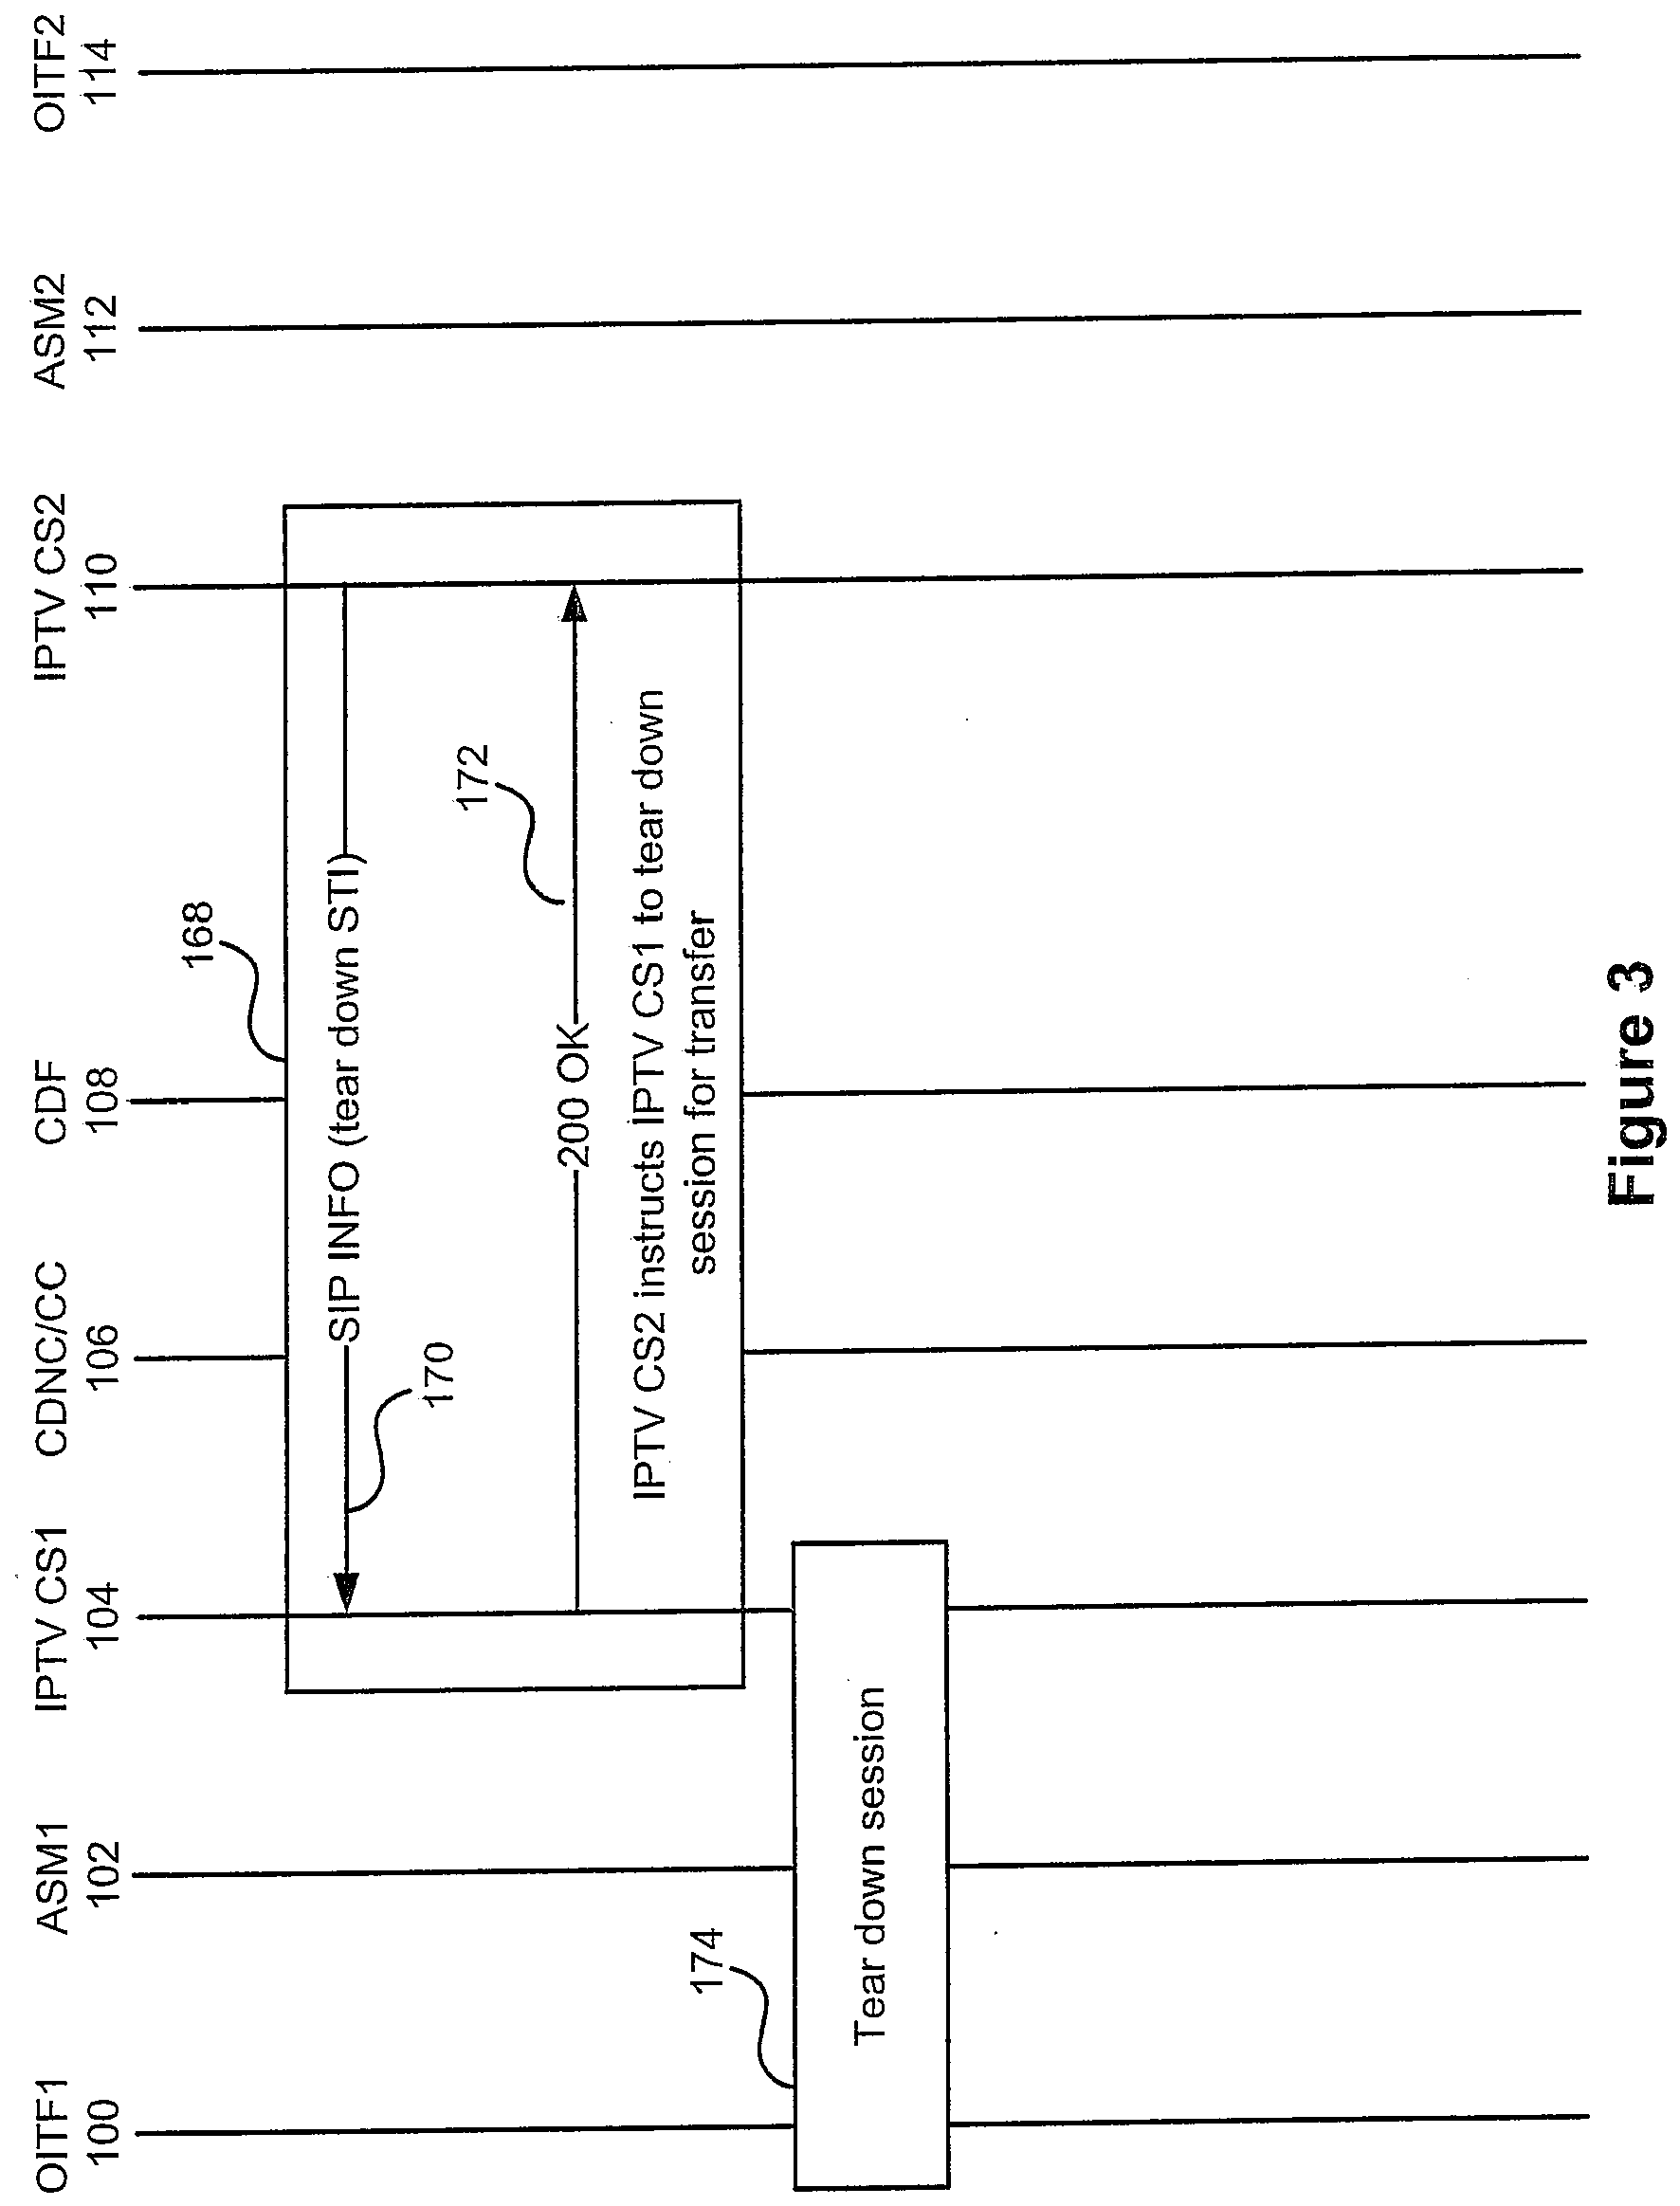 SYSTEM AND METHOD FOR TRANSFERRING A SESSION ACROSS DOMAINS